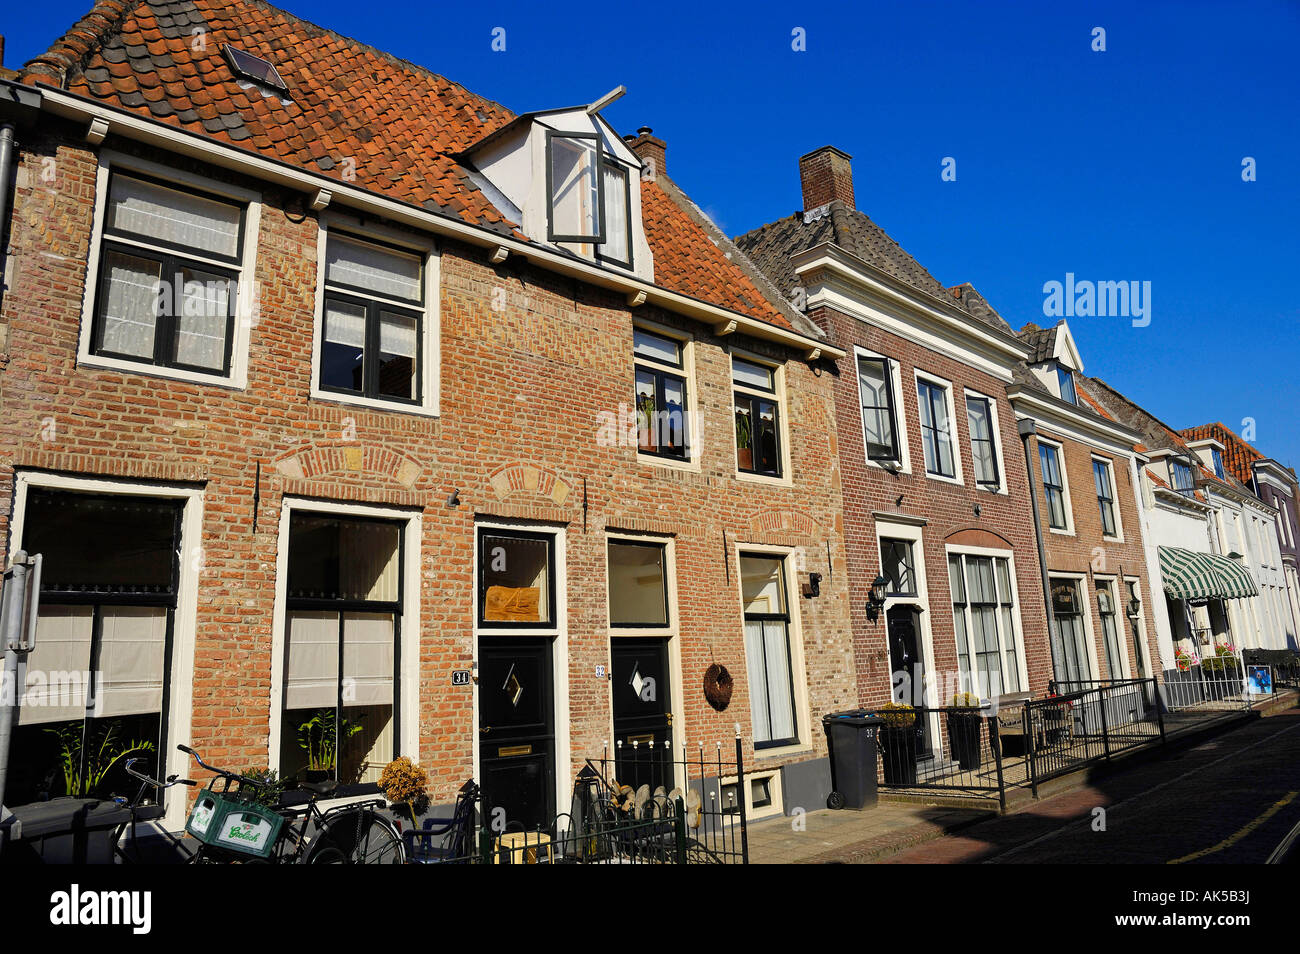 Row of houses, Elburg - Stock Image